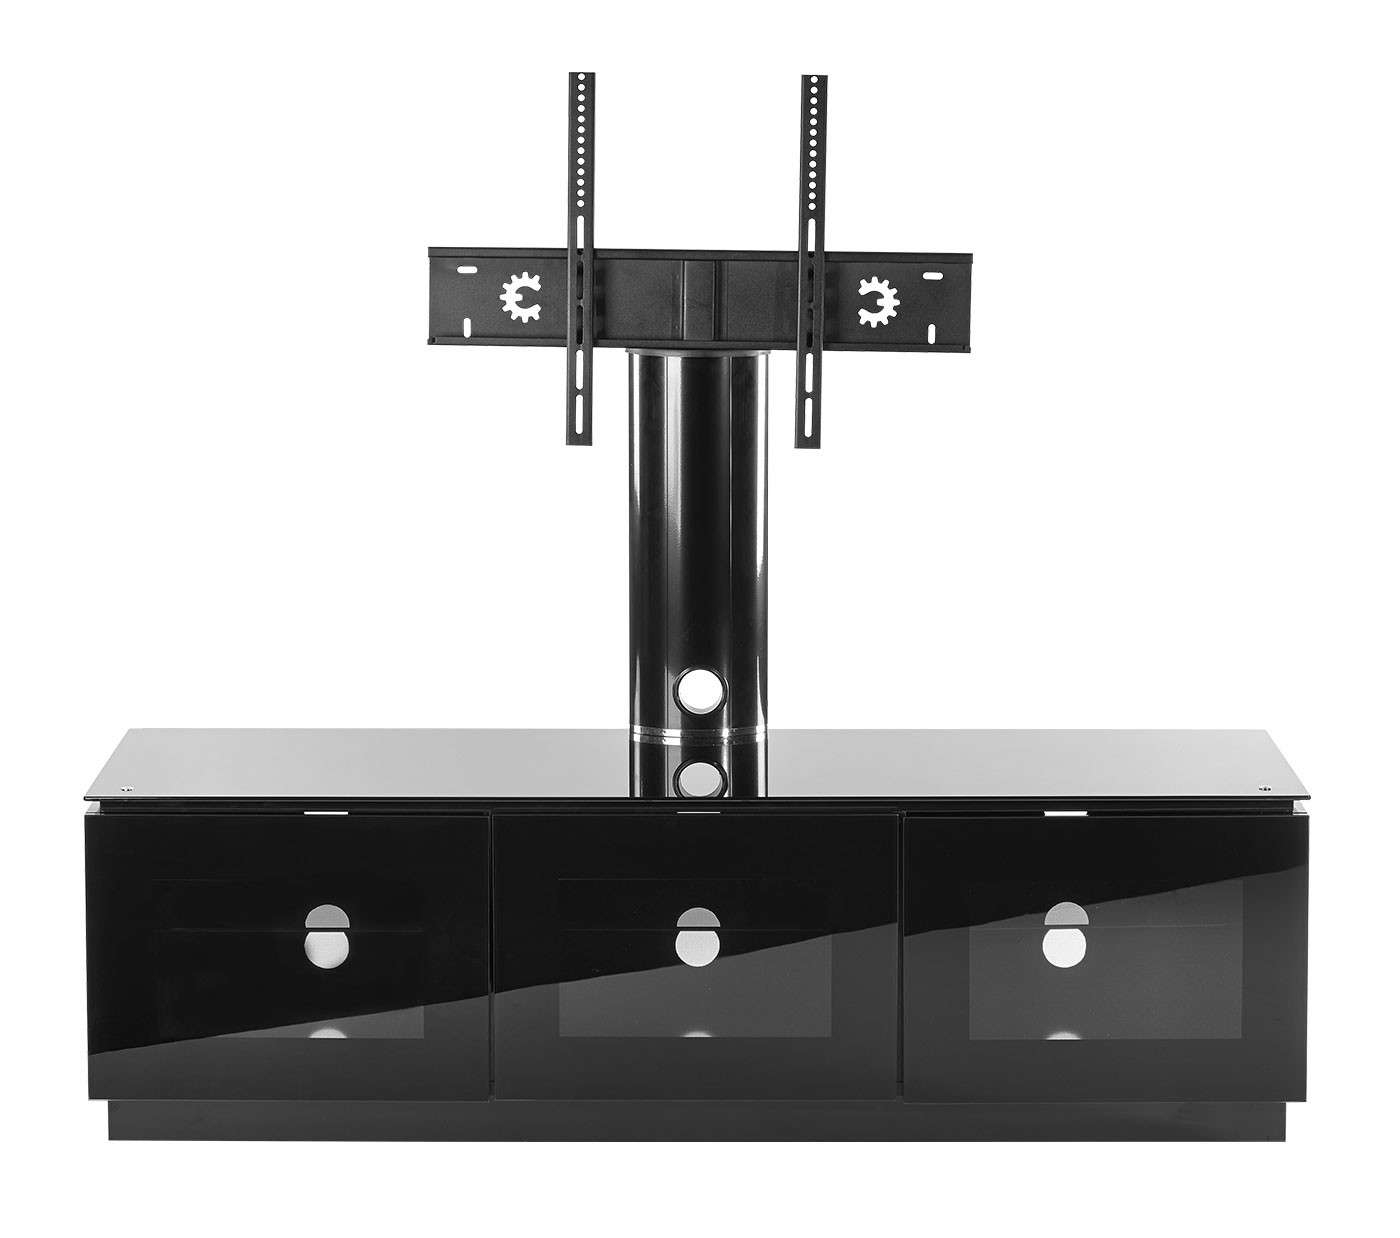 Black Tv Cabinet With Mount For Up To 65 Inch Tv | Mmt D1500 Xarm Throughout Tv Cabinets (View 12 of 20)